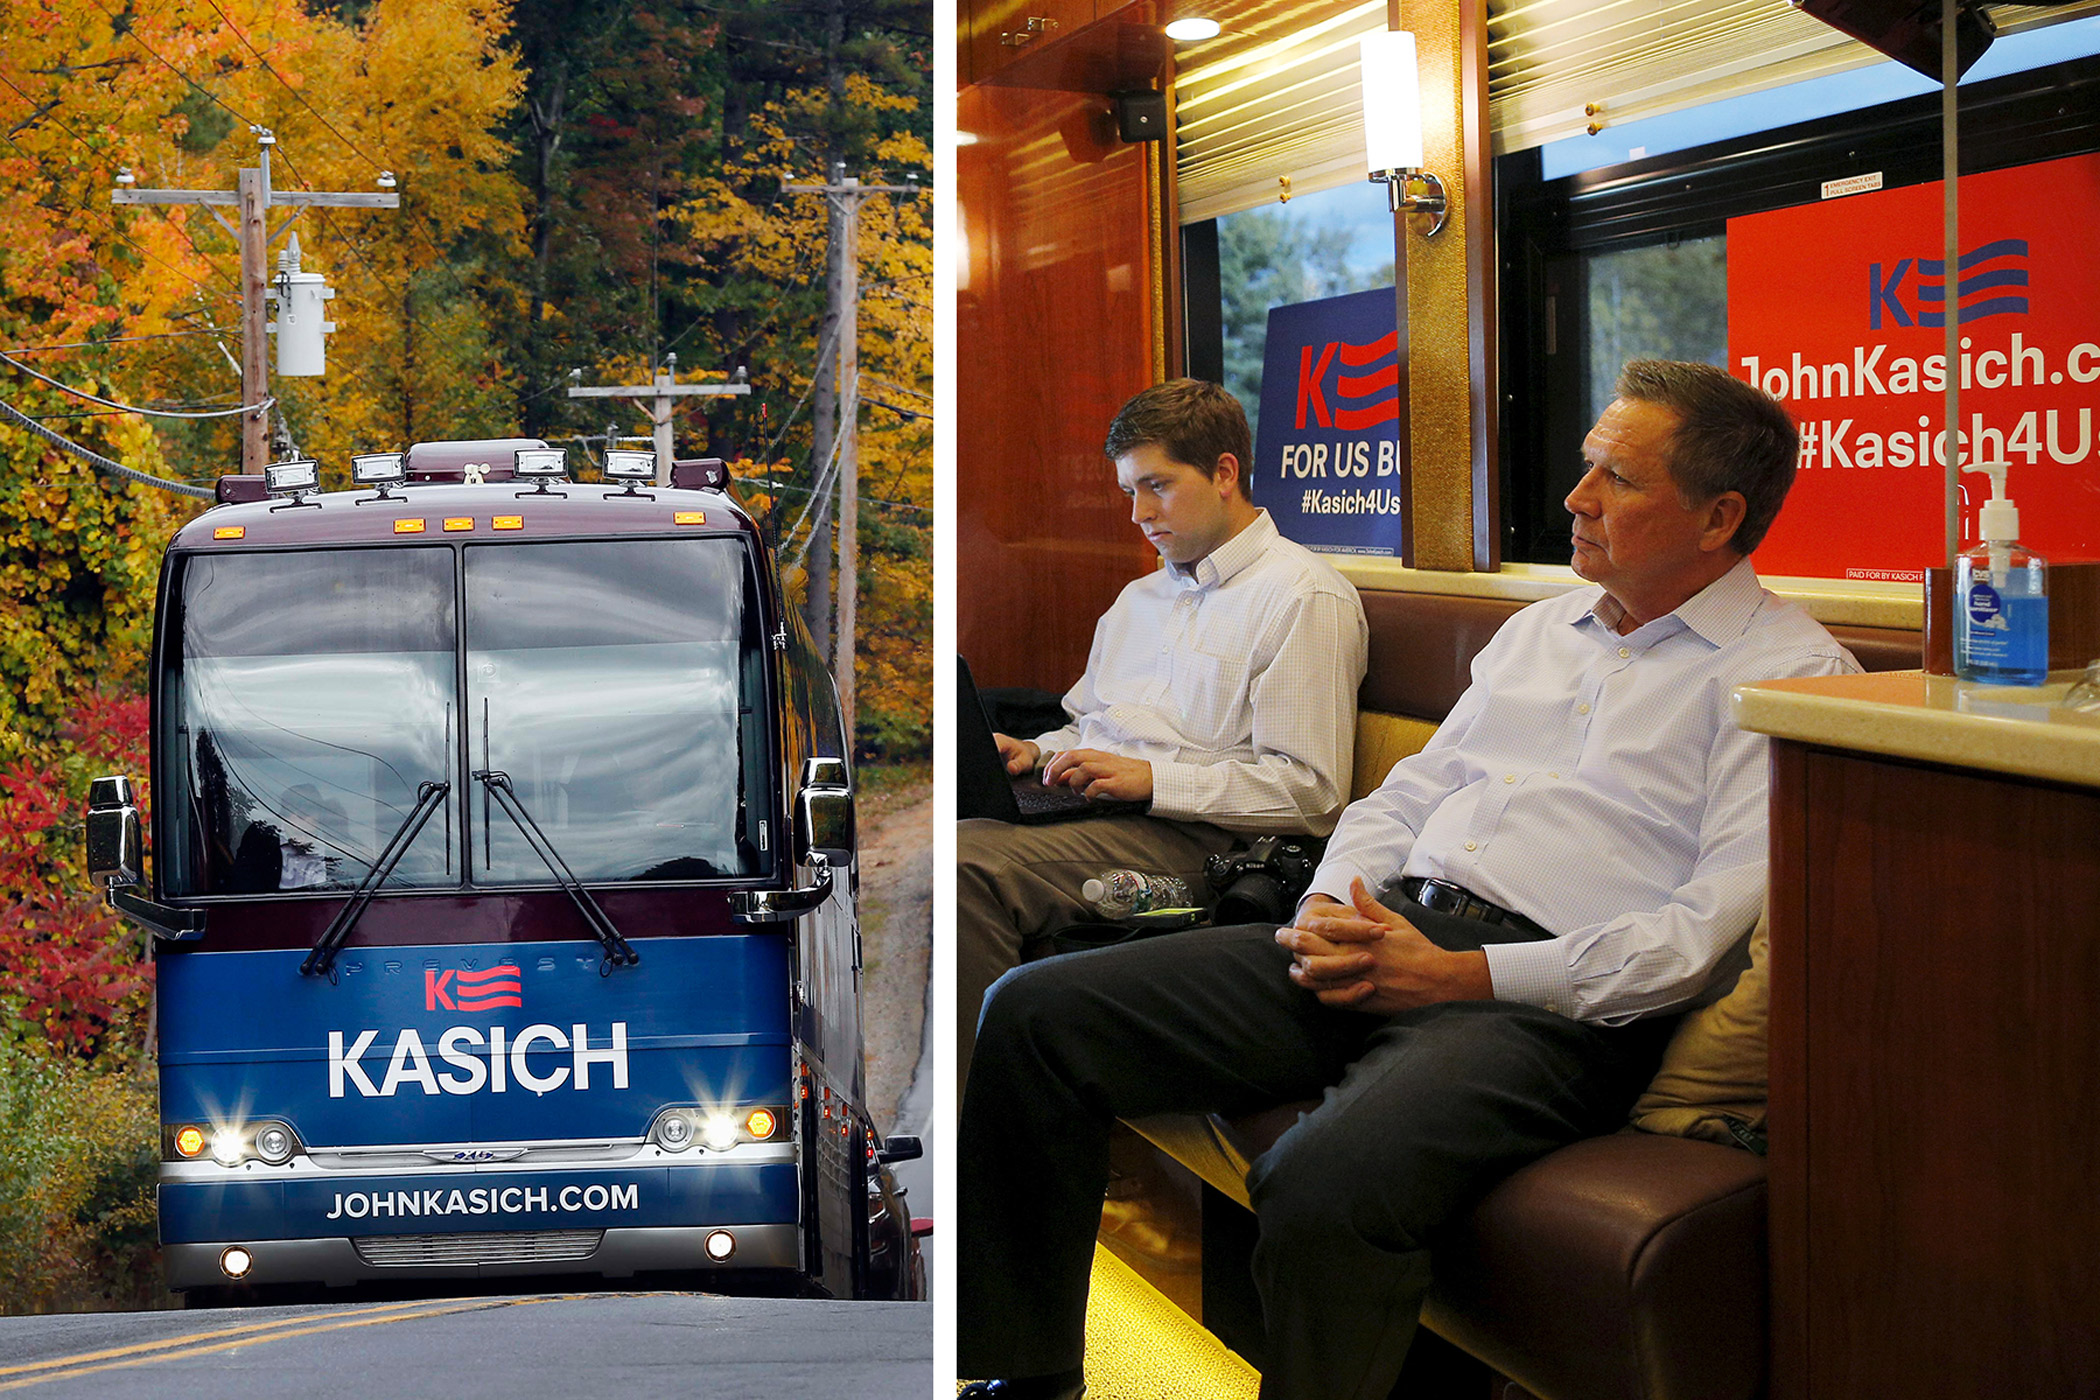 Republican presidential candidate John Kasich, at right, rides his campaign bus in Plymouth, New Hampshire on Oct. 14, 2015. At left, the exterior of Kasich's bus is seen on Oct. 13, 2015, in Bow, N.H.